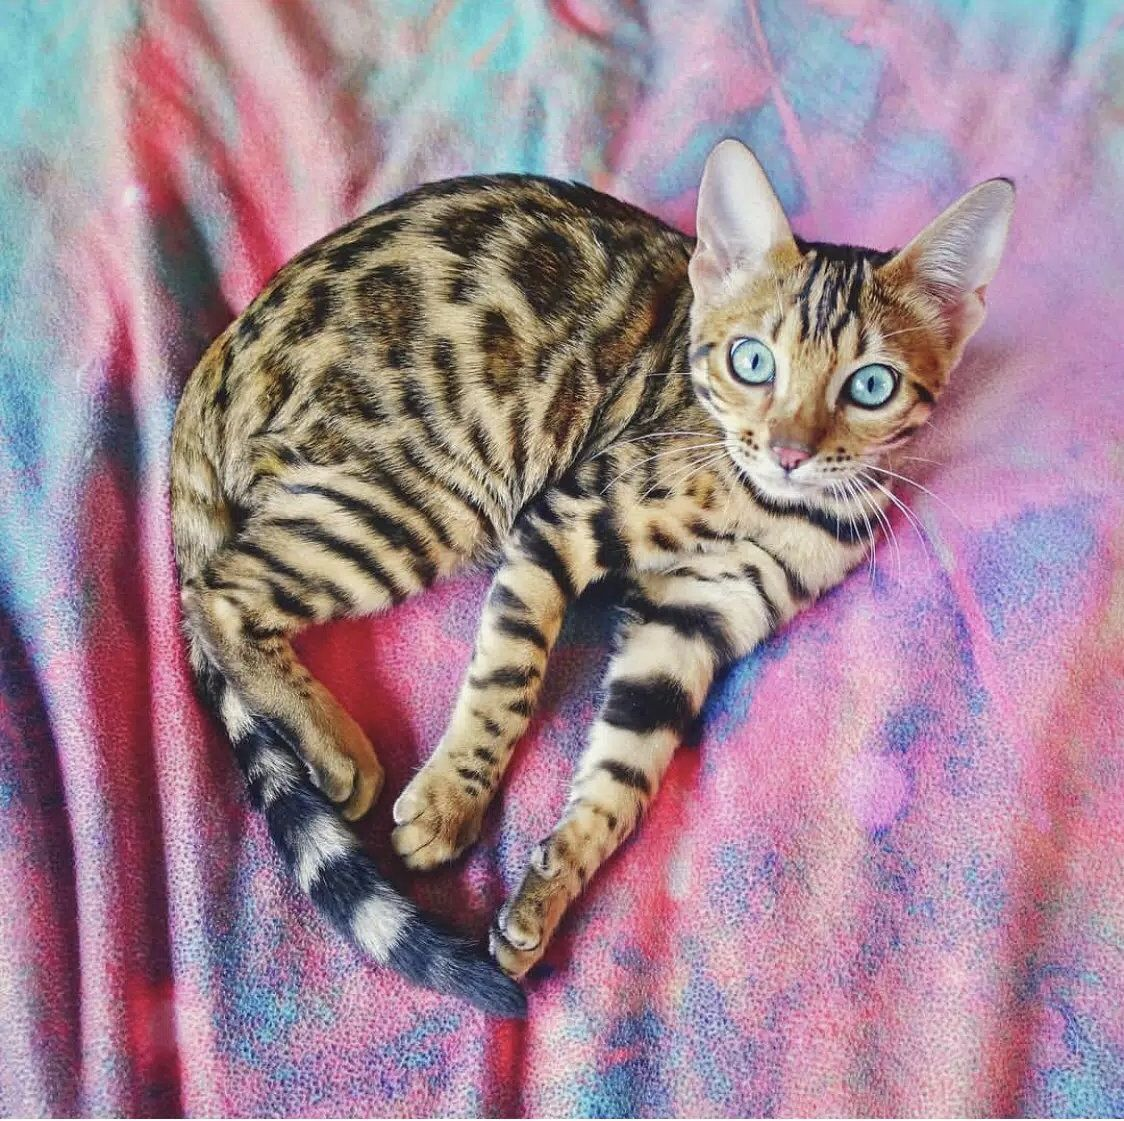 Pin By Goessel On Pets Bengal Cat Bengal Kitten Cat Photography